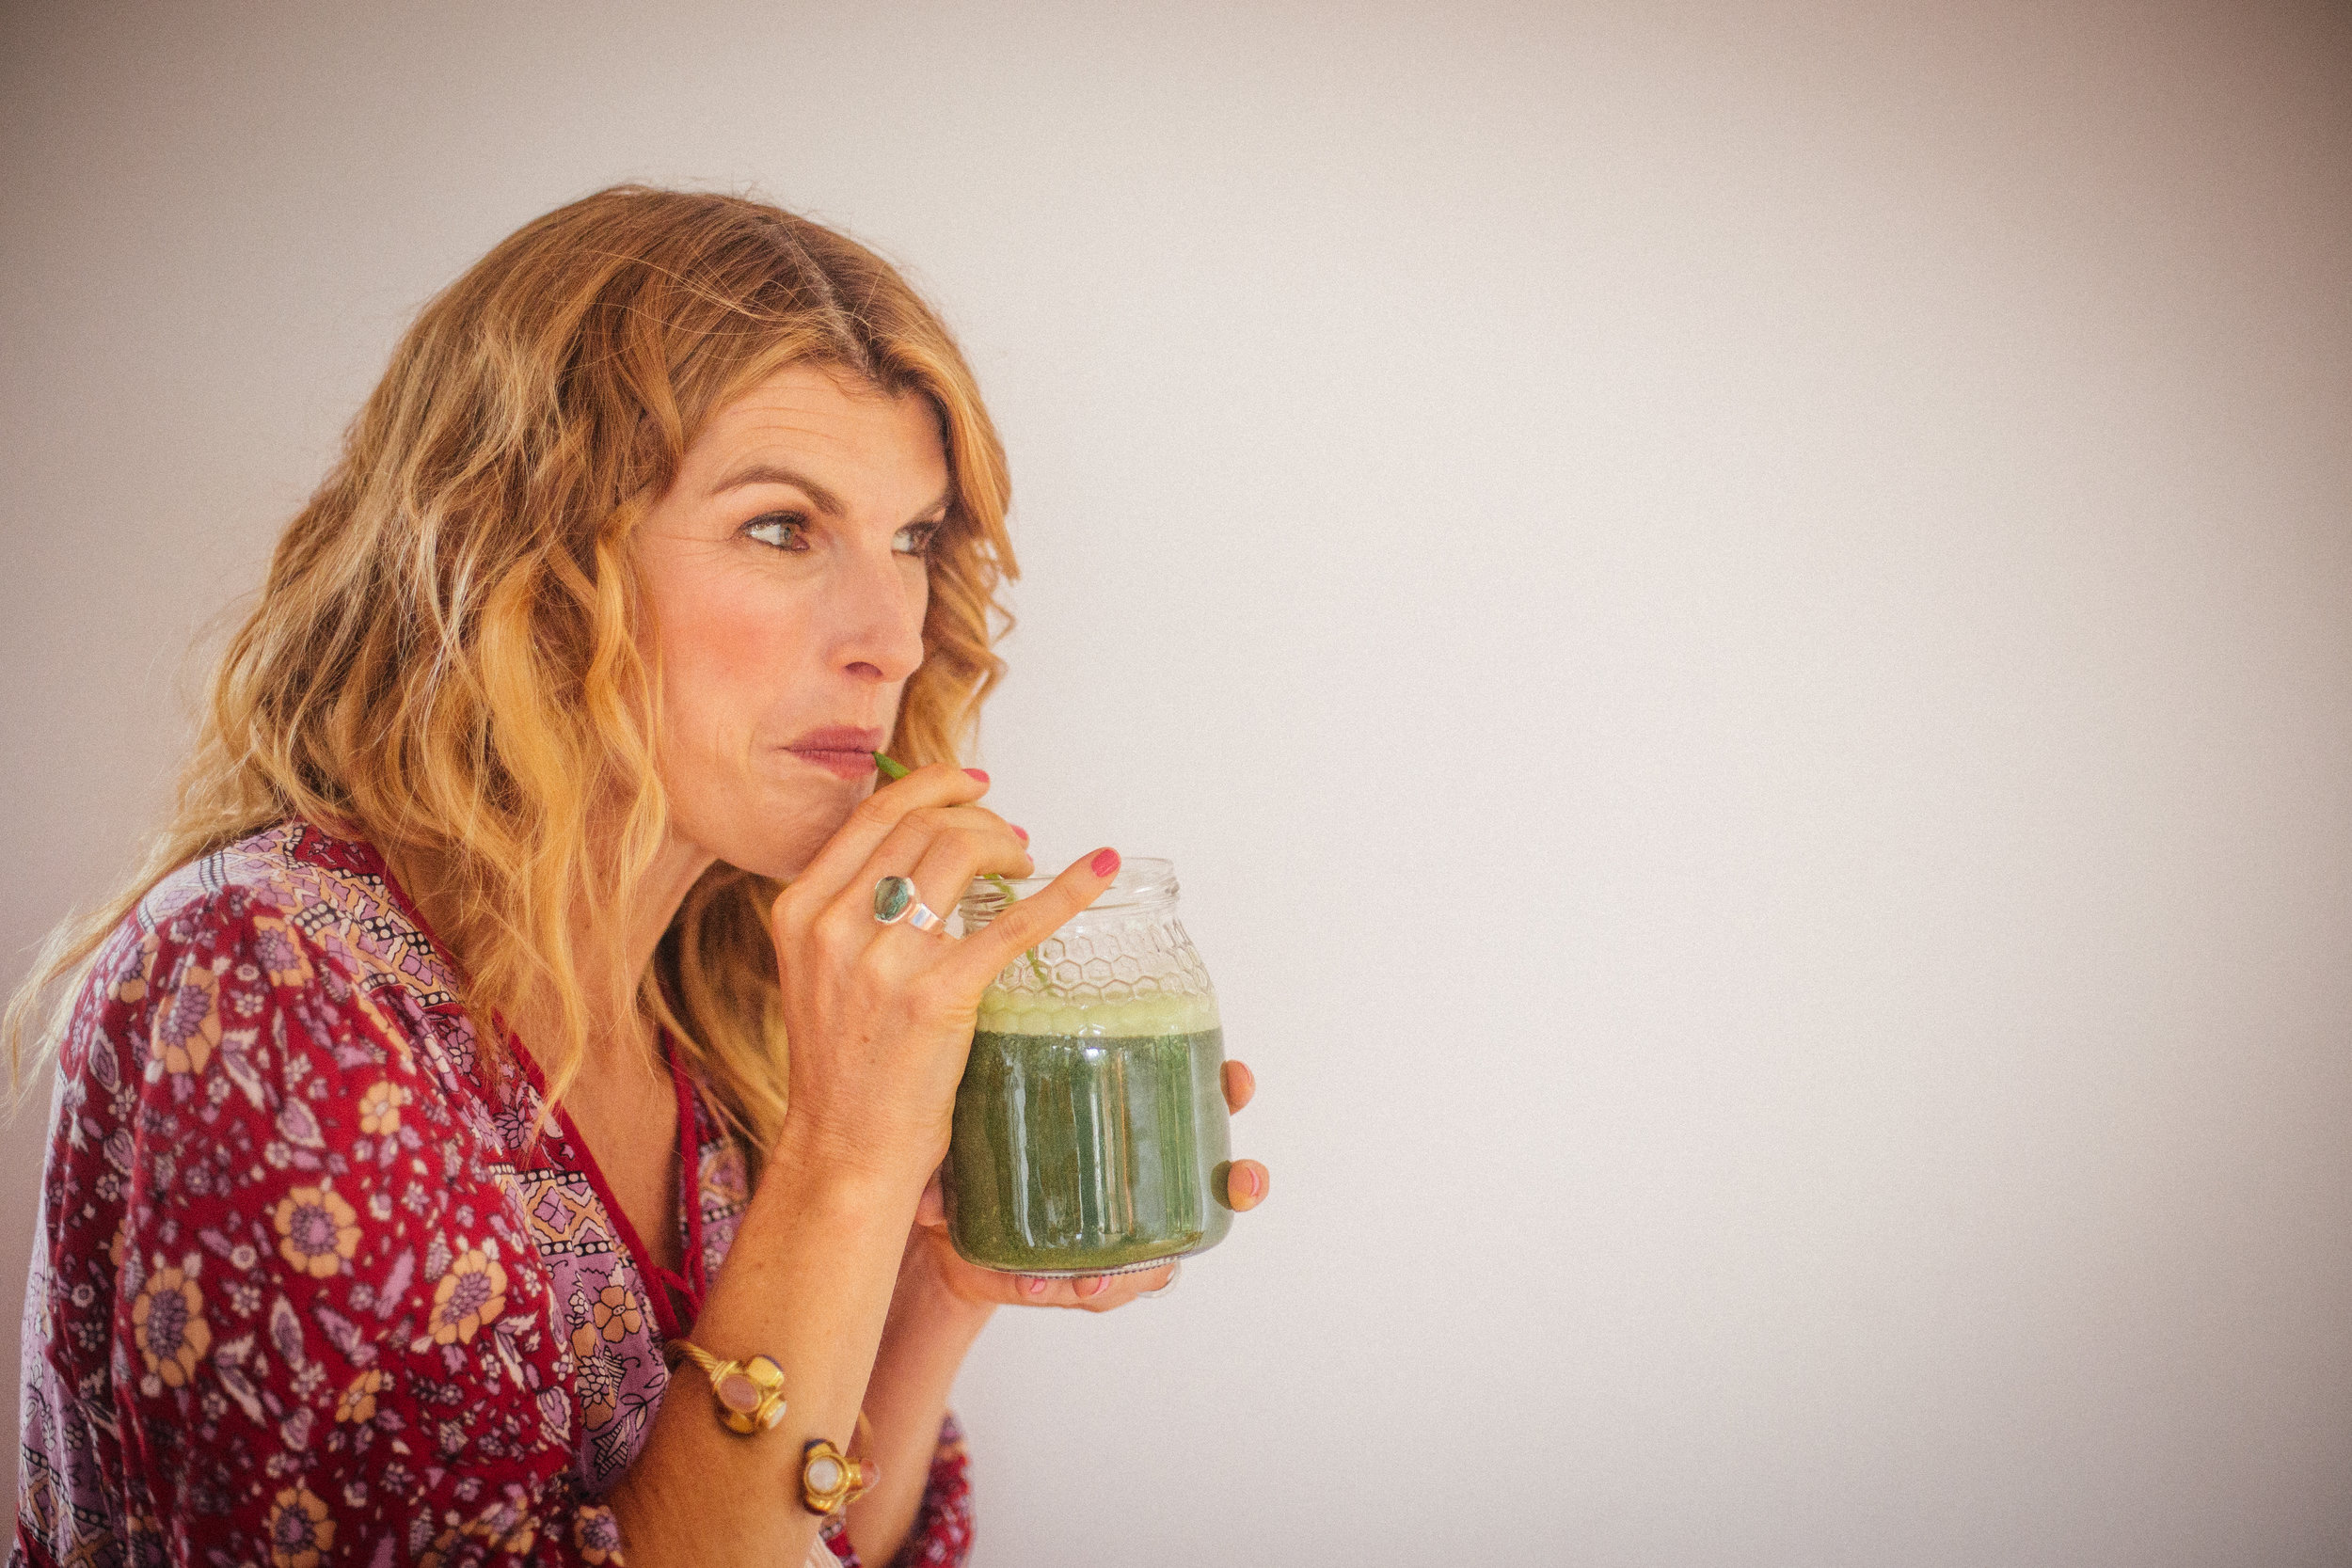 Lizzy-Williamson-Green-Smoothie